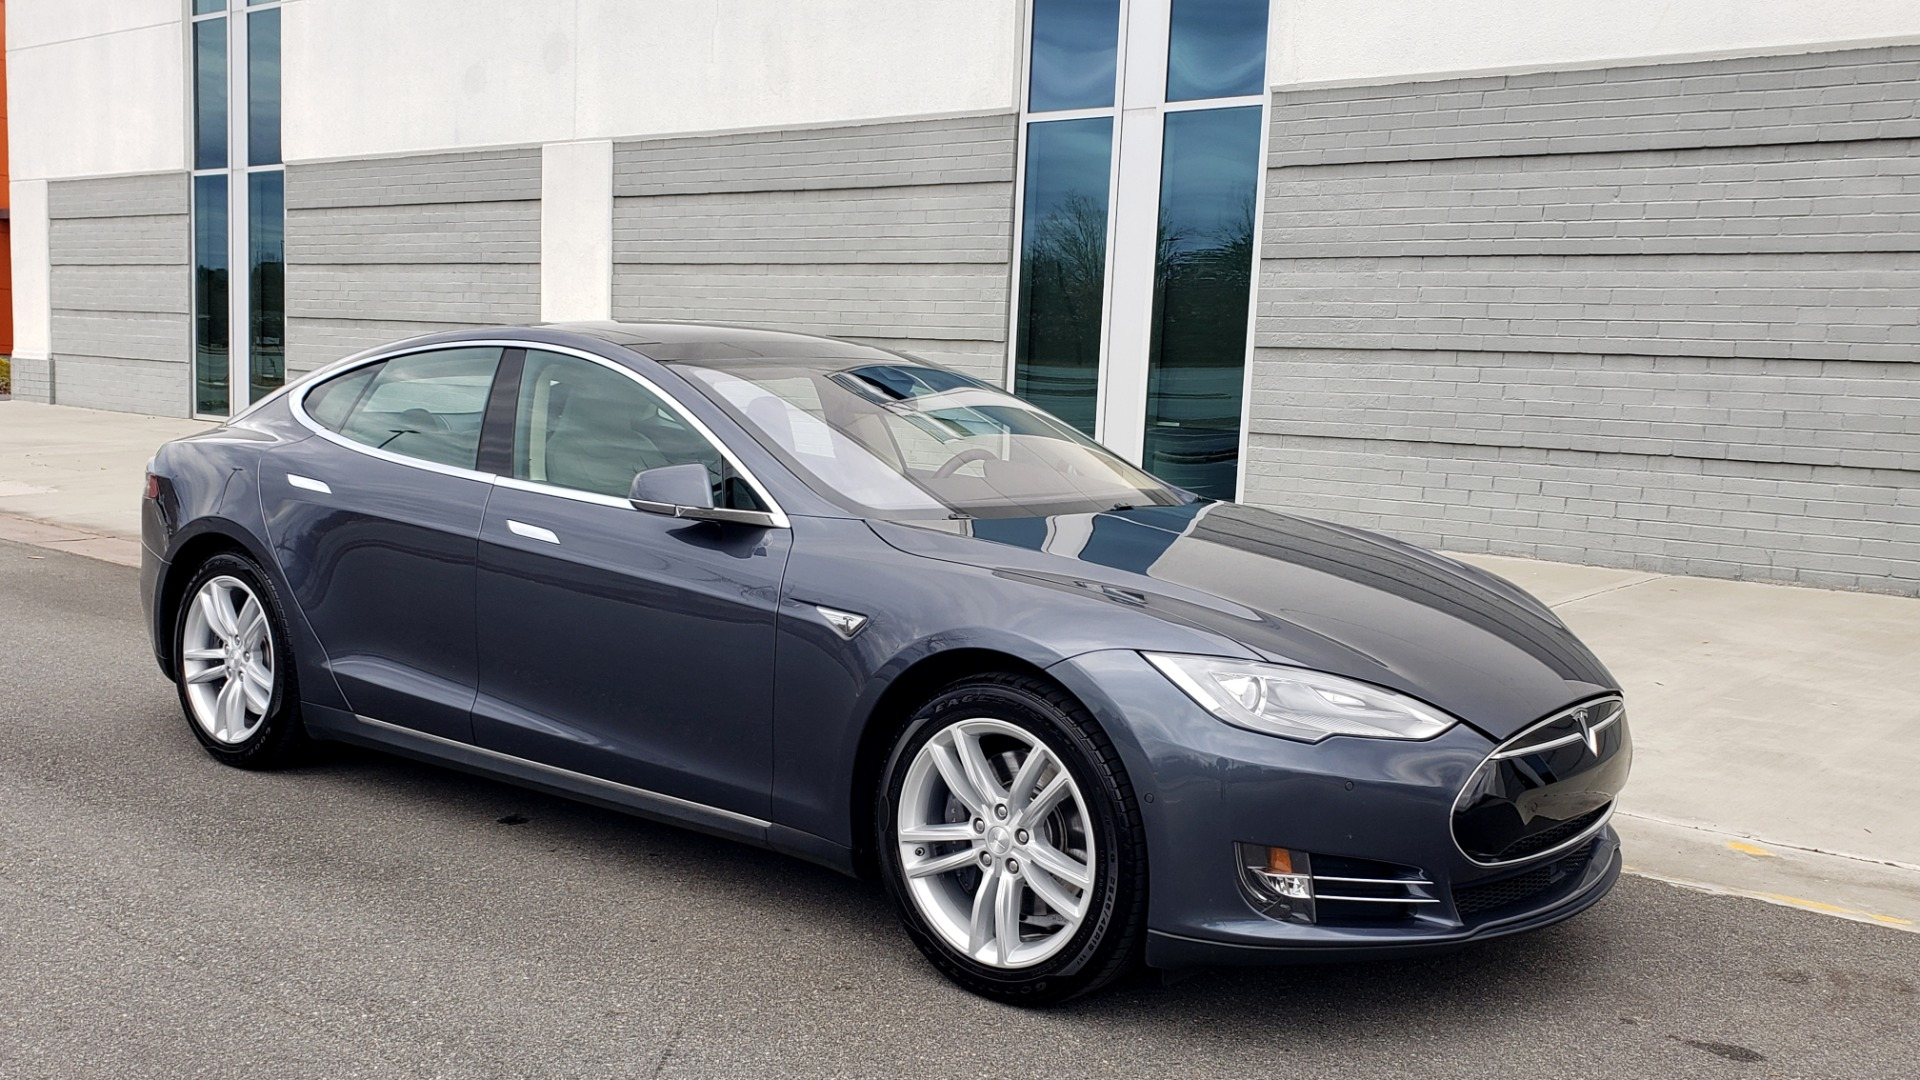 Used 2014 Tesla MODEL S 60 kWh BATTERY / TECH / NAV / SUBZERO / SUNROOF / REARVIEW for sale Sold at Formula Imports in Charlotte NC 28227 6